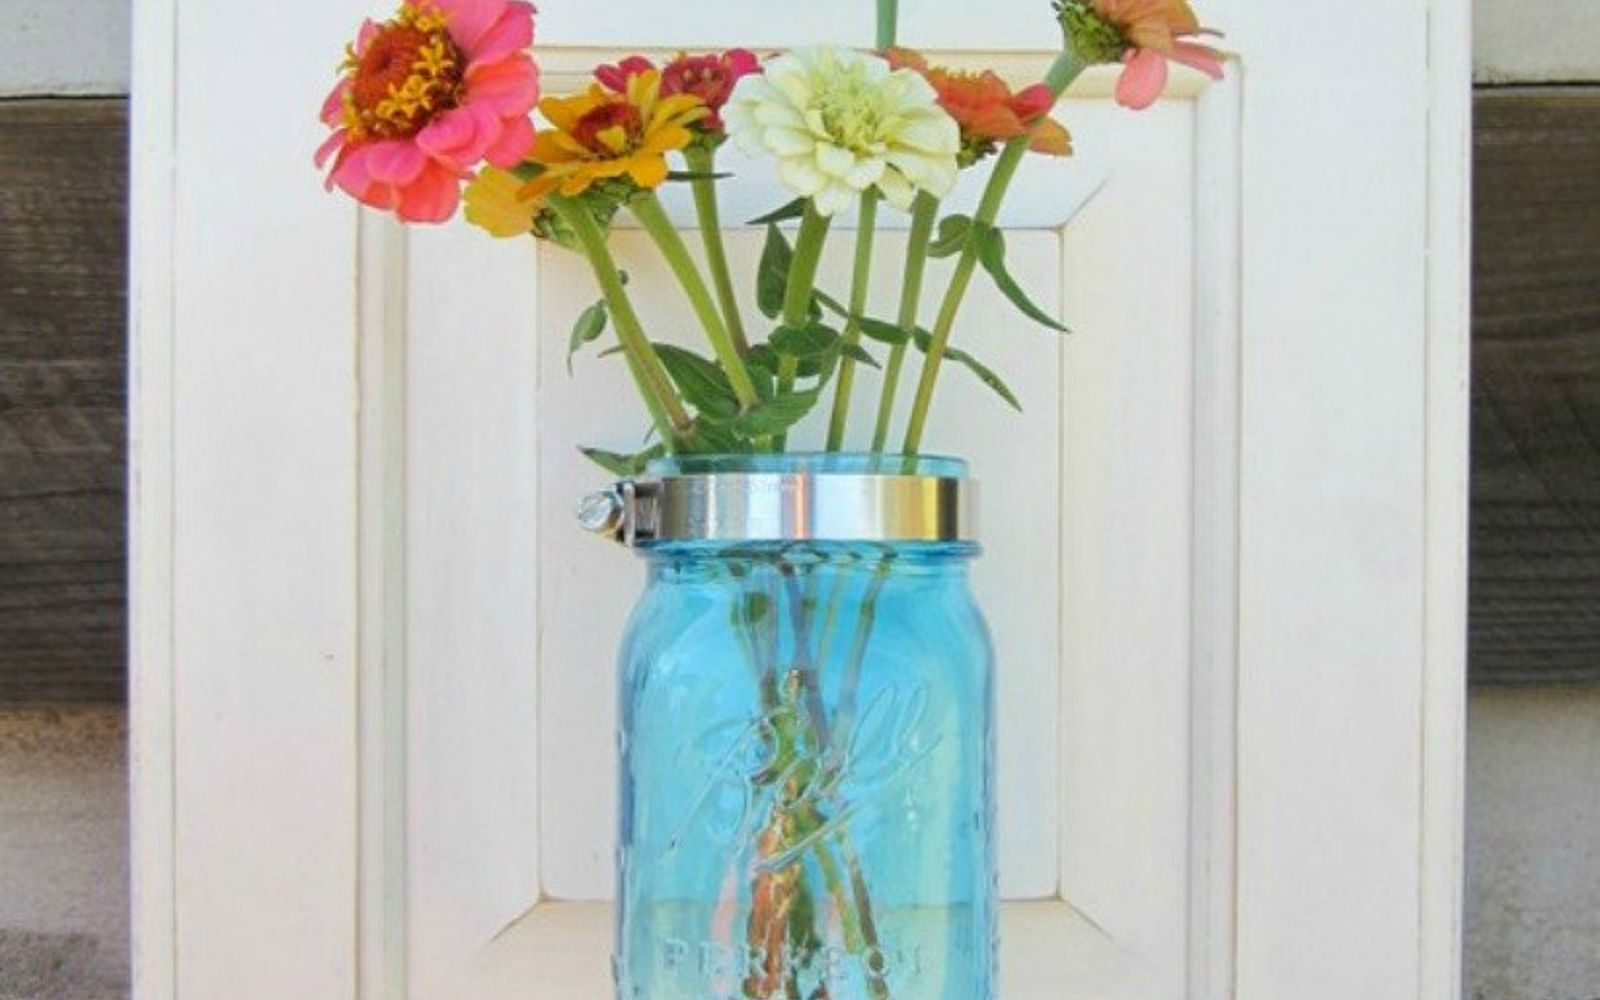 s rip off your cabinet doors for these brilliant upcycling ideas, Hang mason jars on them as wall vases